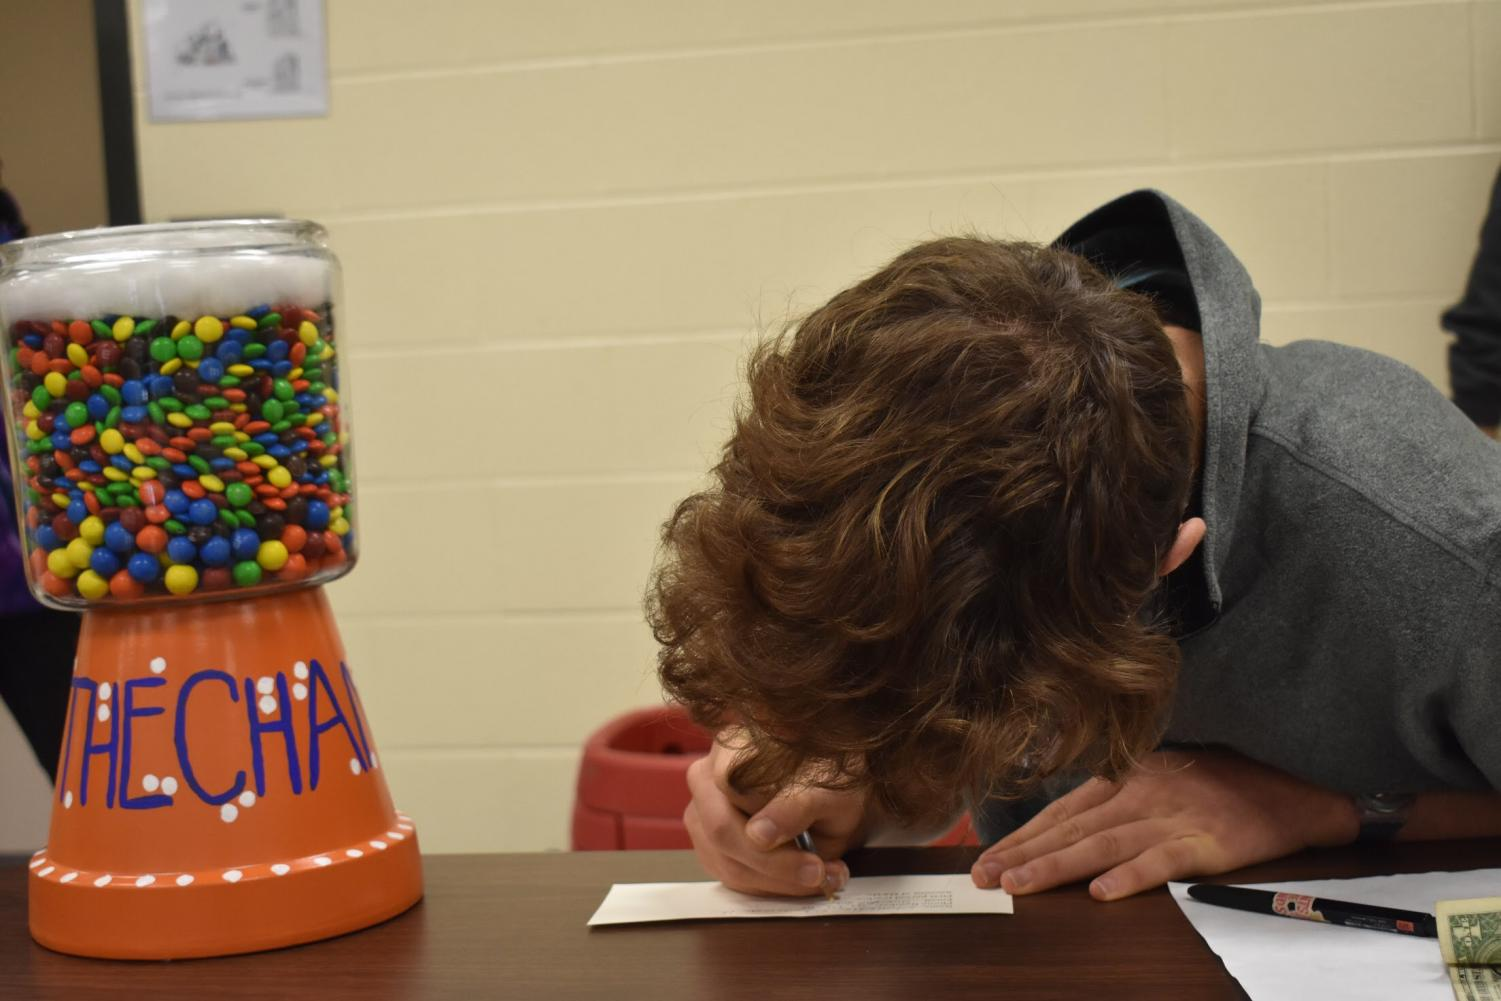 Senior Chandler Quaile eagerly fills out a sheet of paper in the freshman academy, hoping to end up the lucky winner. Sponsored by the Chant and promoted here by senior staffers Haley Kish and Nia-Simone Sherwood (not pictured), this event sees students attempt to guess the number of M&M's within the jar pictured above: those who guess correctly will win a wristband ticket for the upcoming Music Midtown. The competition starts Monday, September 9, and ends this Wednesday, September 11.